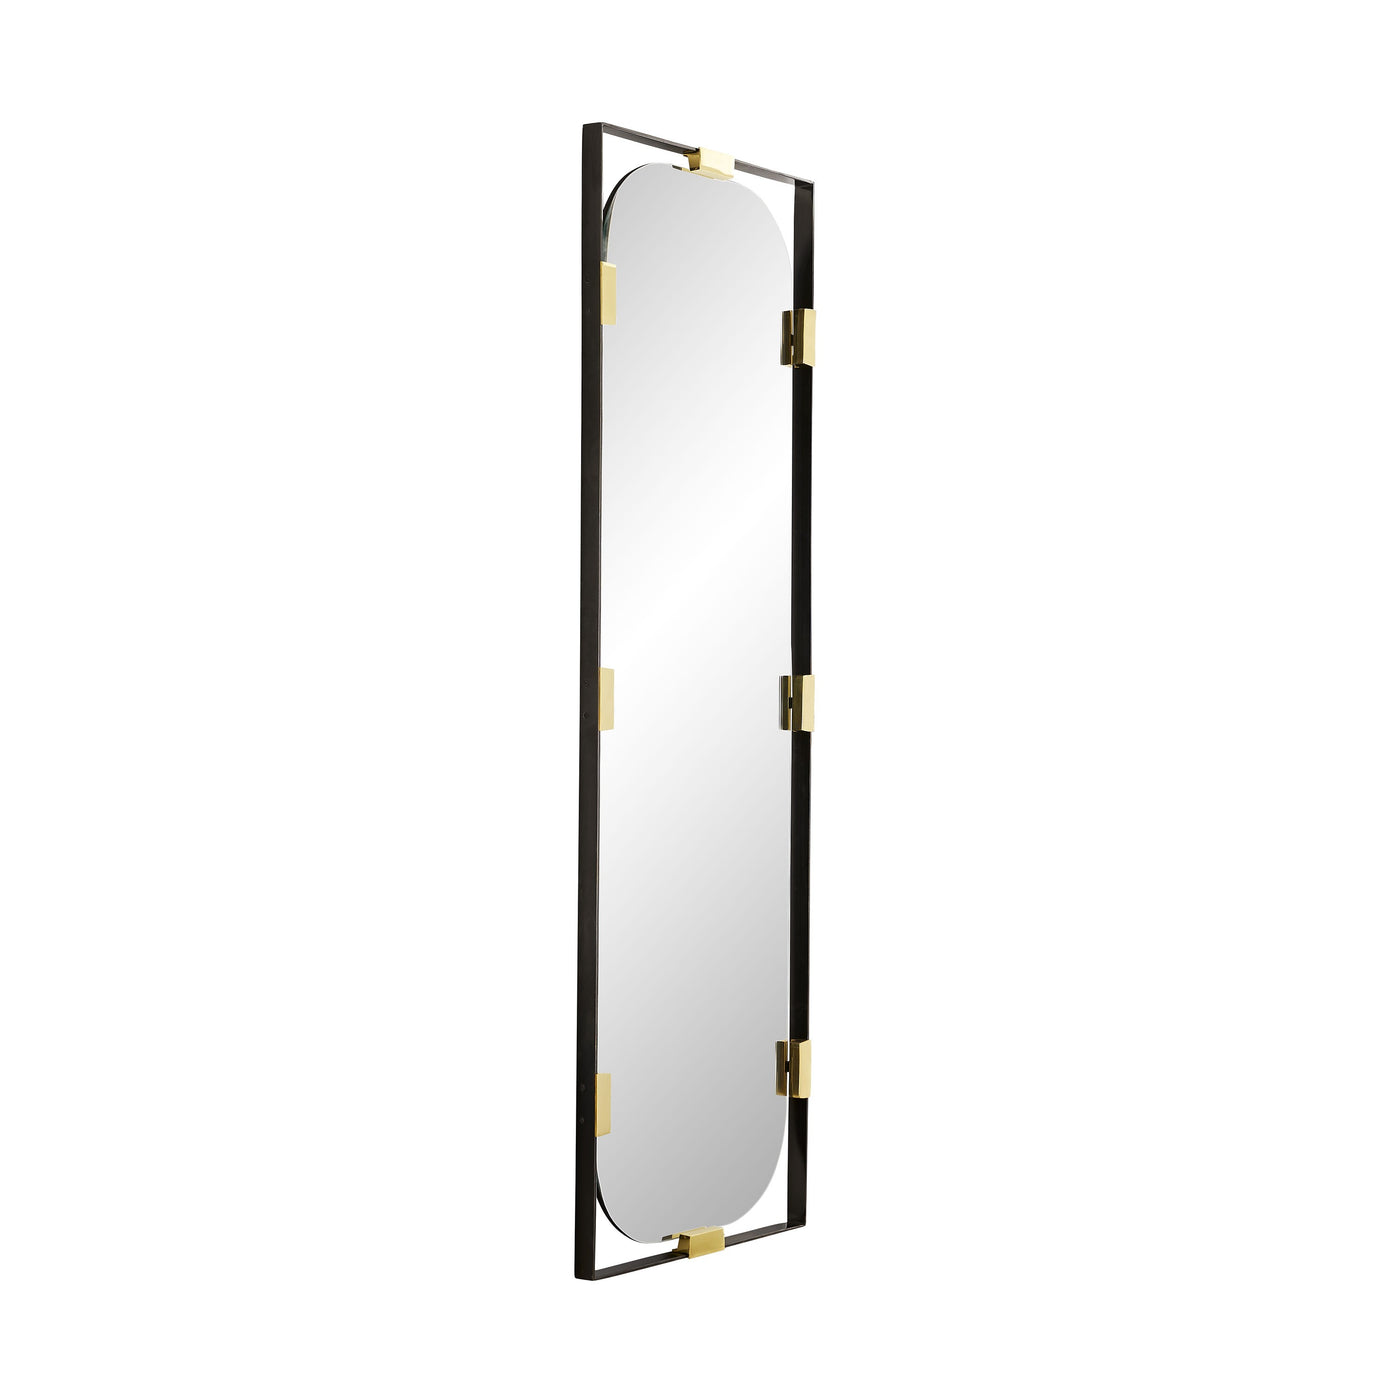 arteriors frankie floor mirror side view